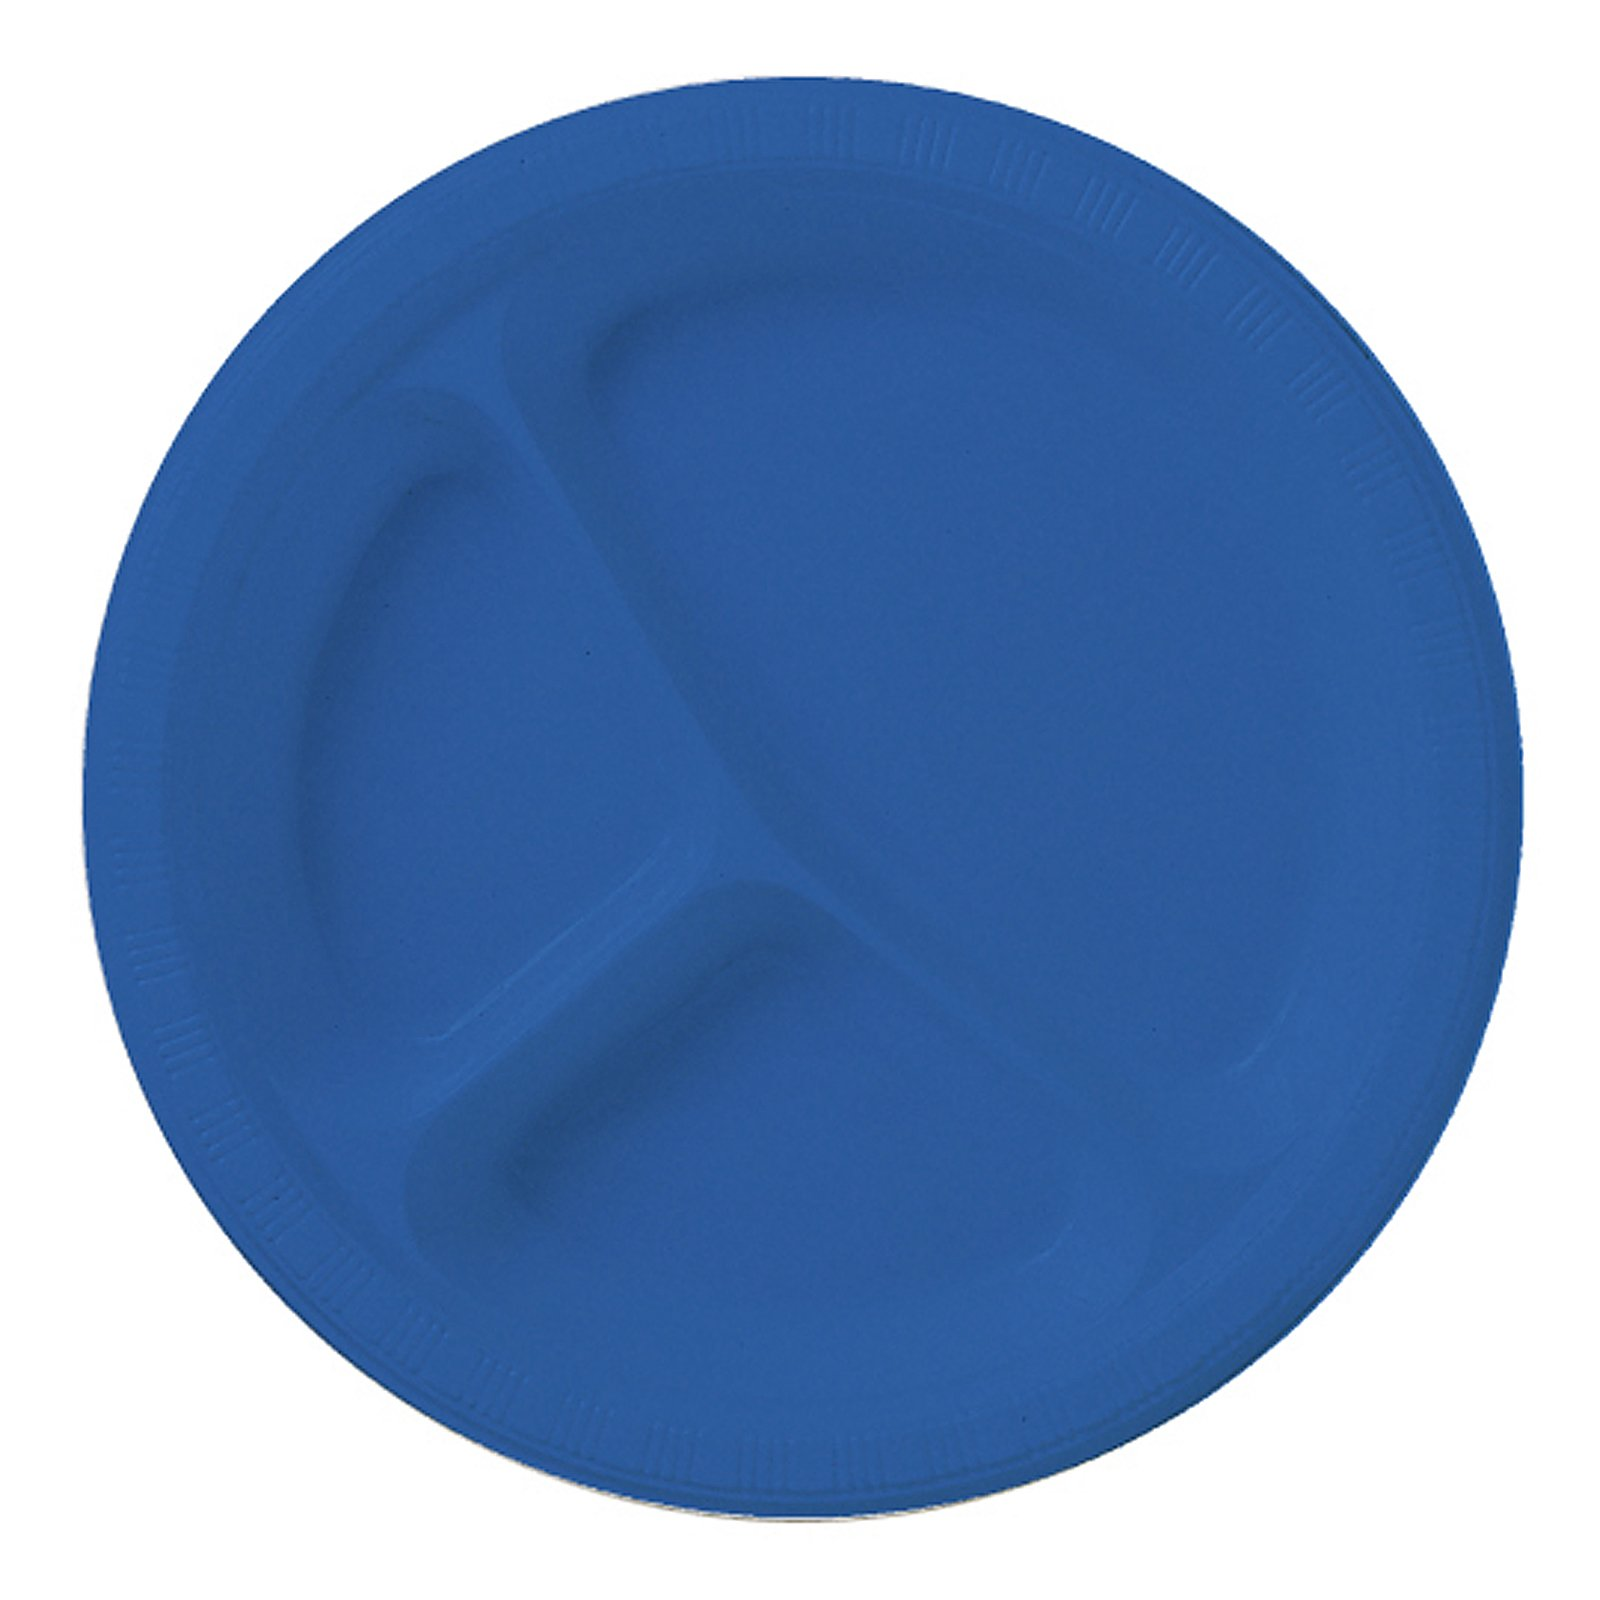 True Blue (Blue) Plastic Divided Plates (20 count)